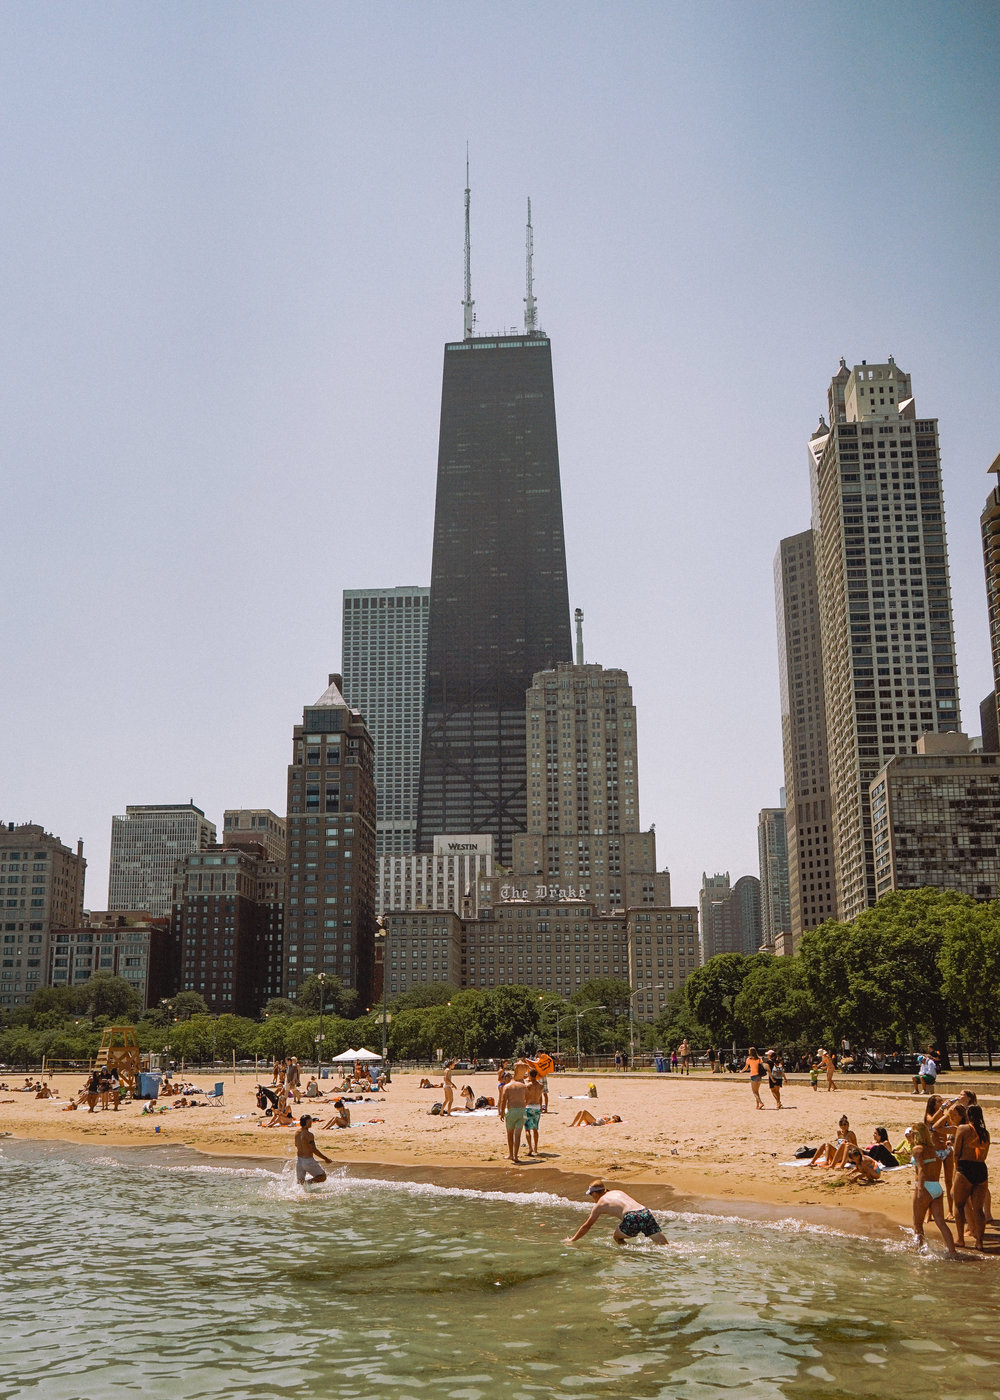 Lake Michigan Beach in Chicago